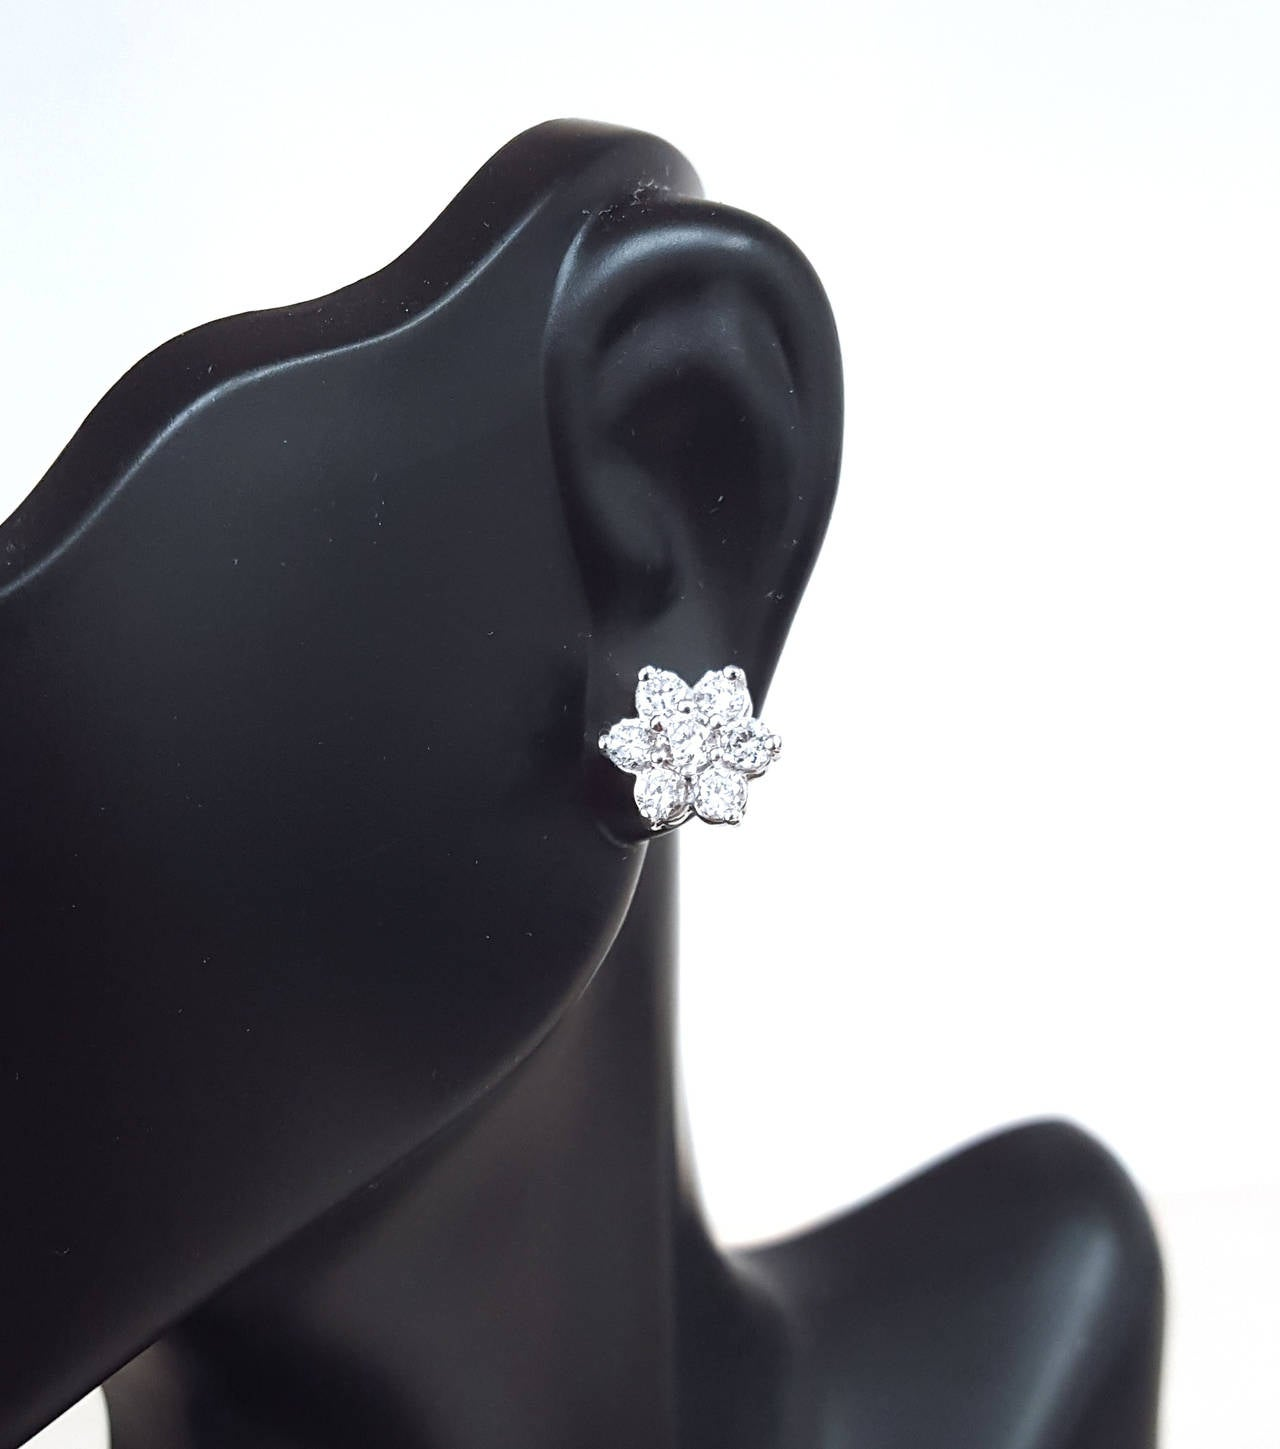 Beautifal cluster diamond earring has a larger 15 pointer diamond in the center and smaller diamonds going around it. 